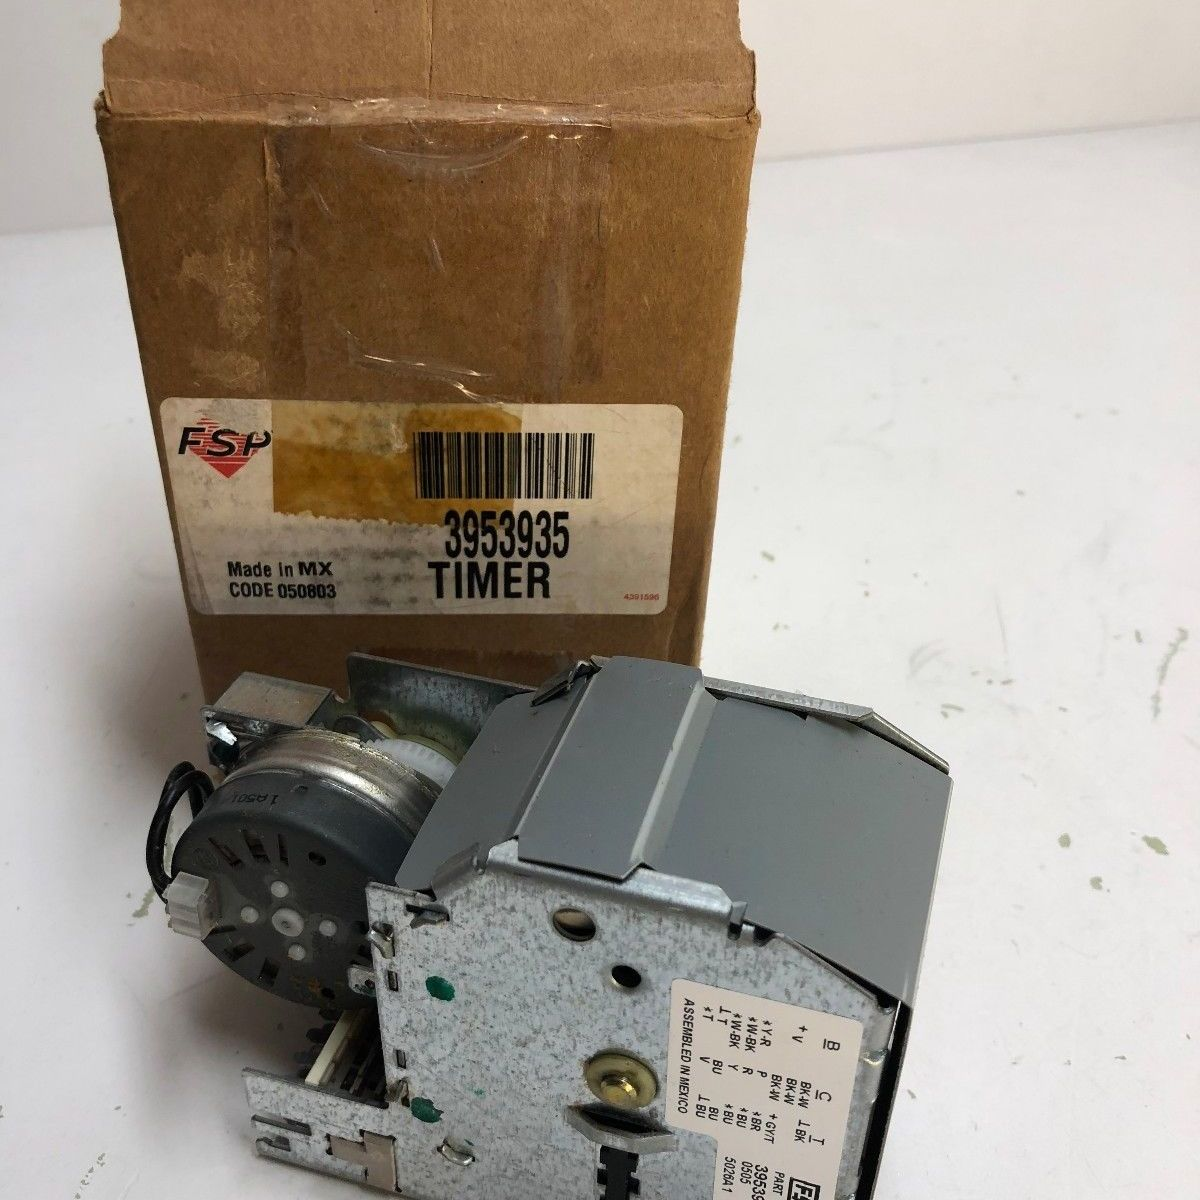 3953935 / WP3953935 WHIRLPOOL WASHER TIMER *NEW PART*